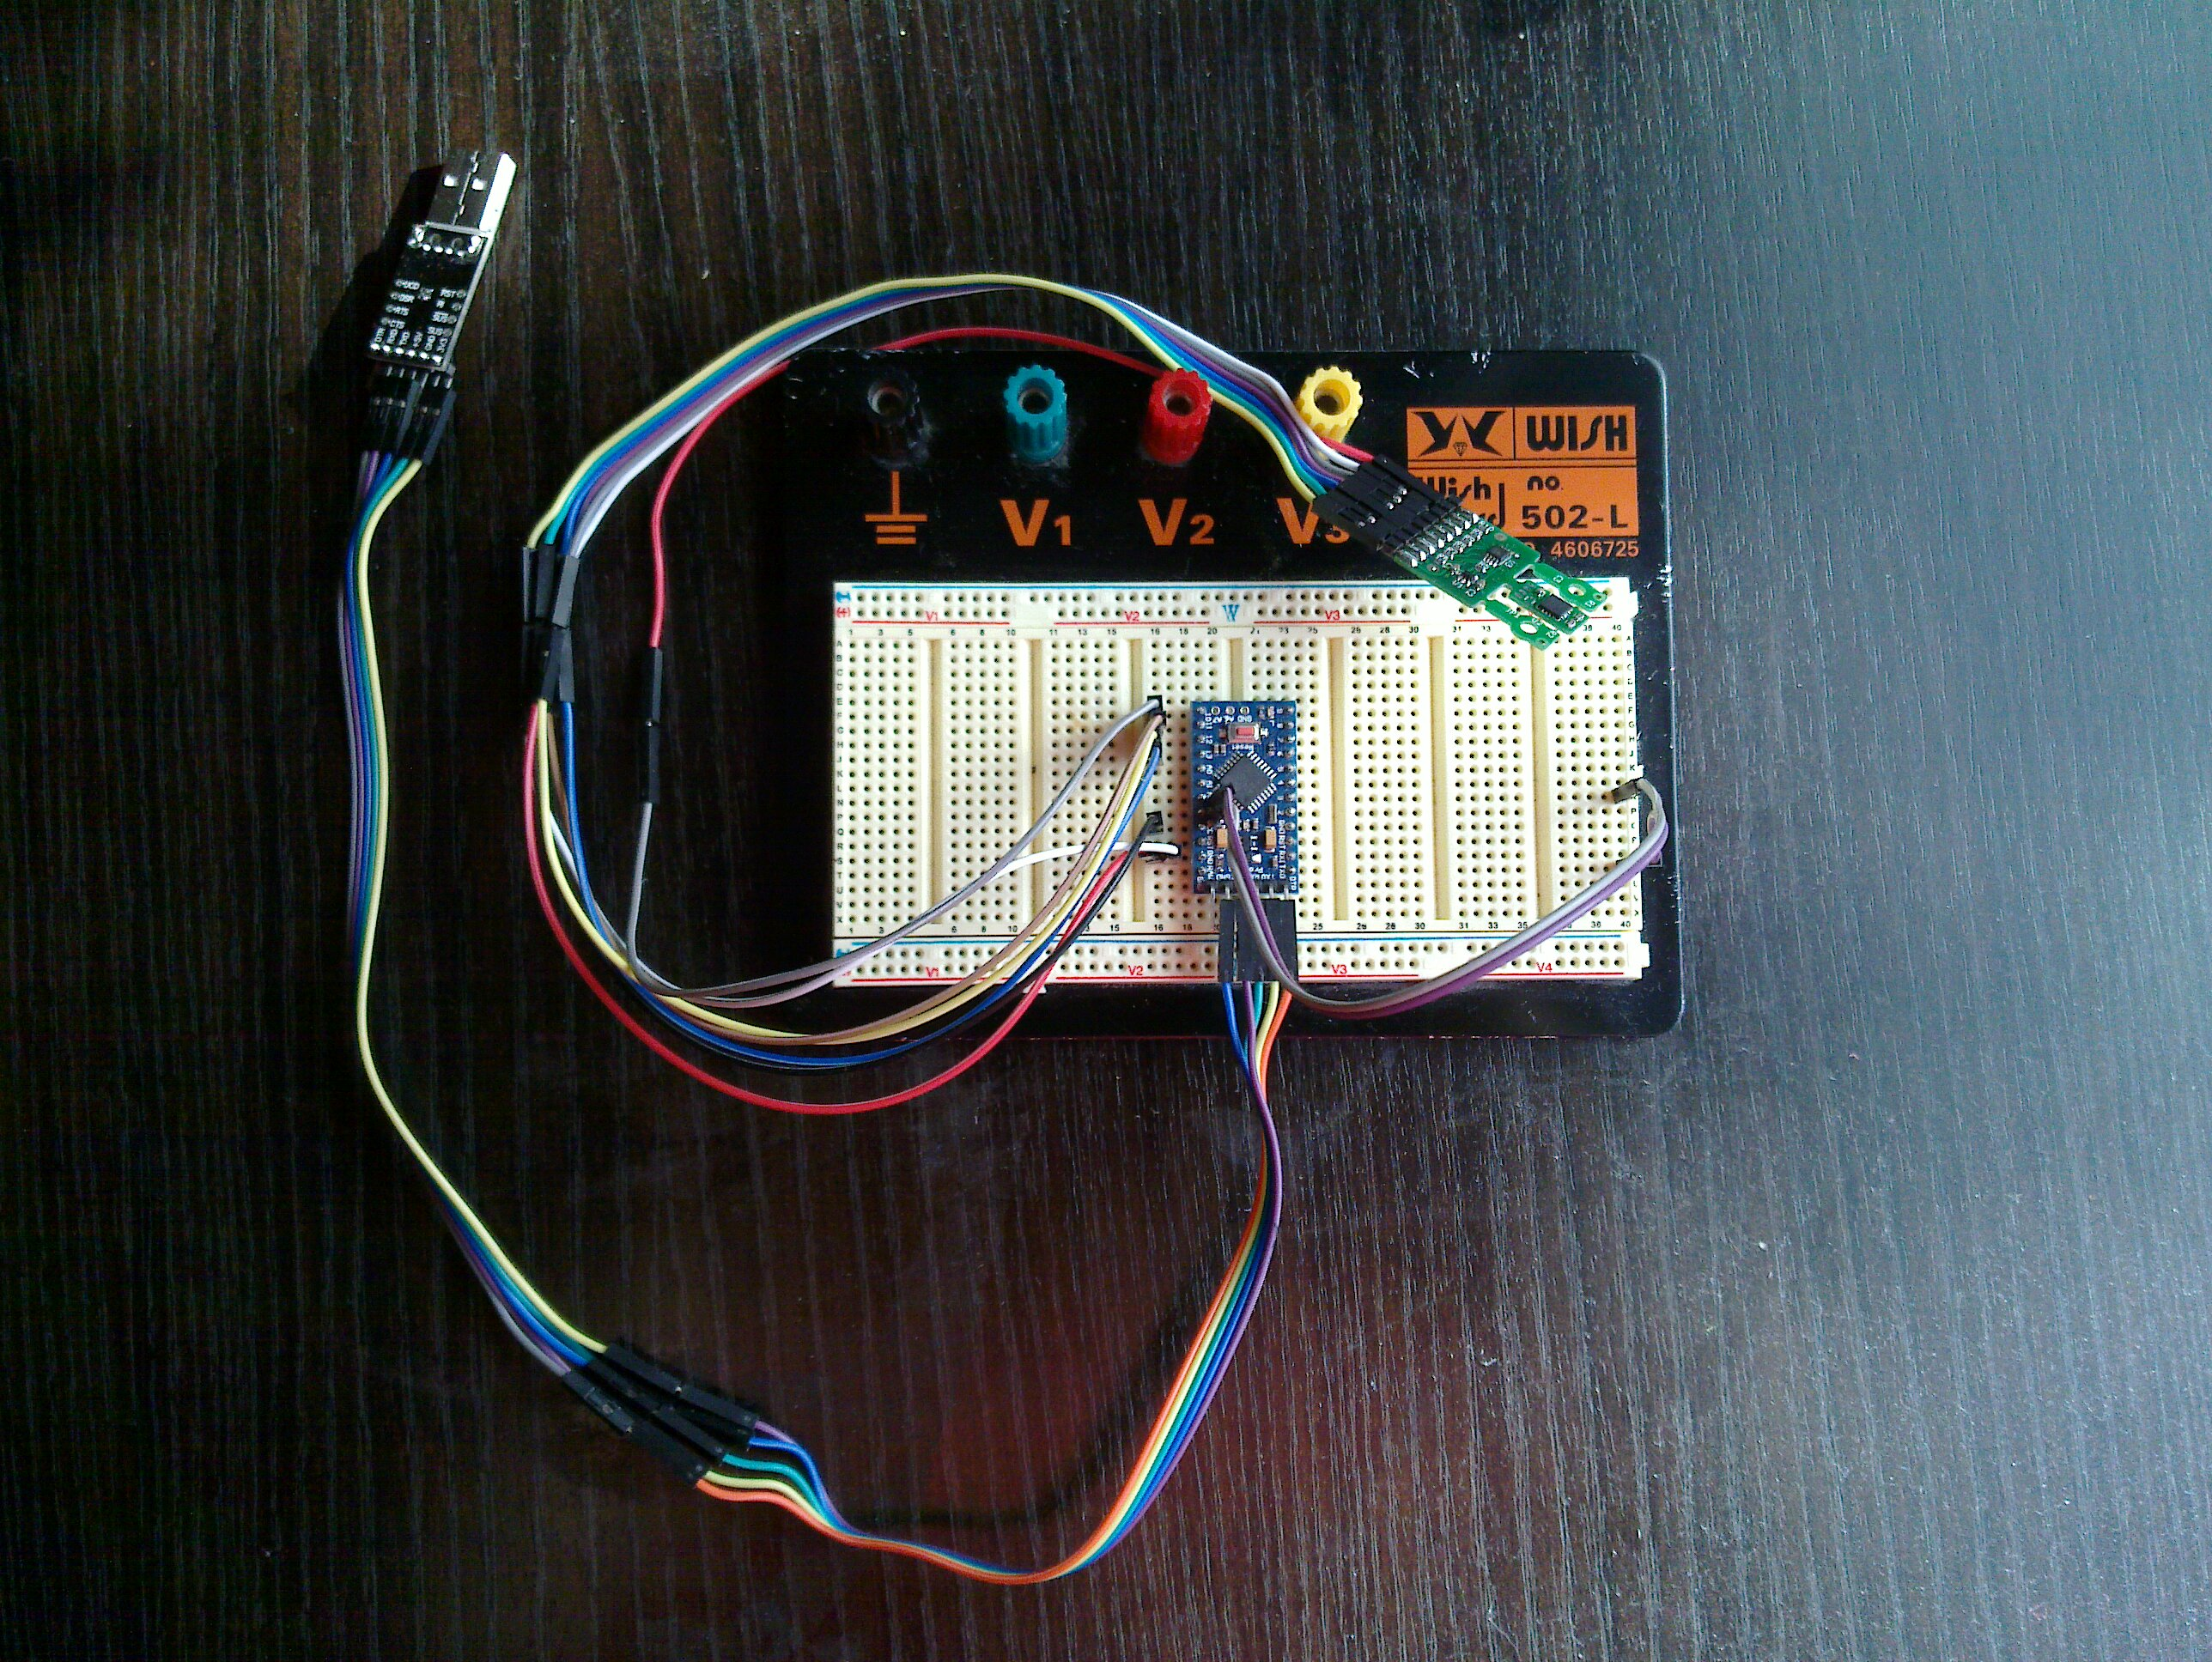 How to measure temperature very accurately with an Arduino